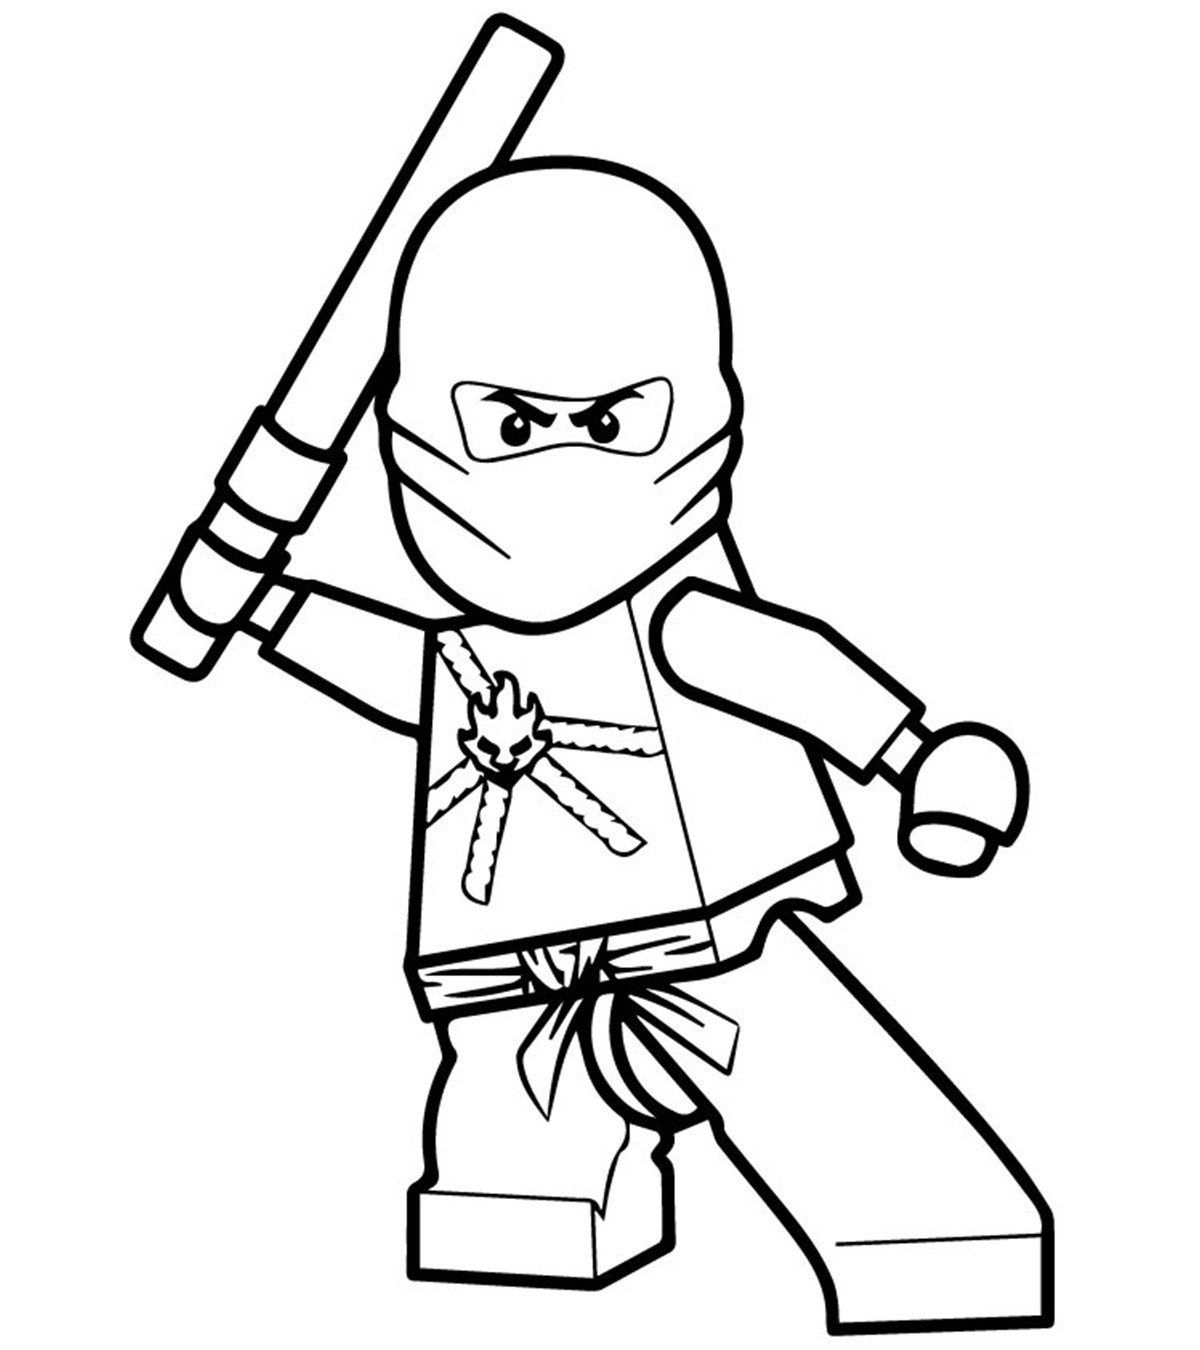 Lego Ninjago Coloring Pages Luxury top 40 Free Printable